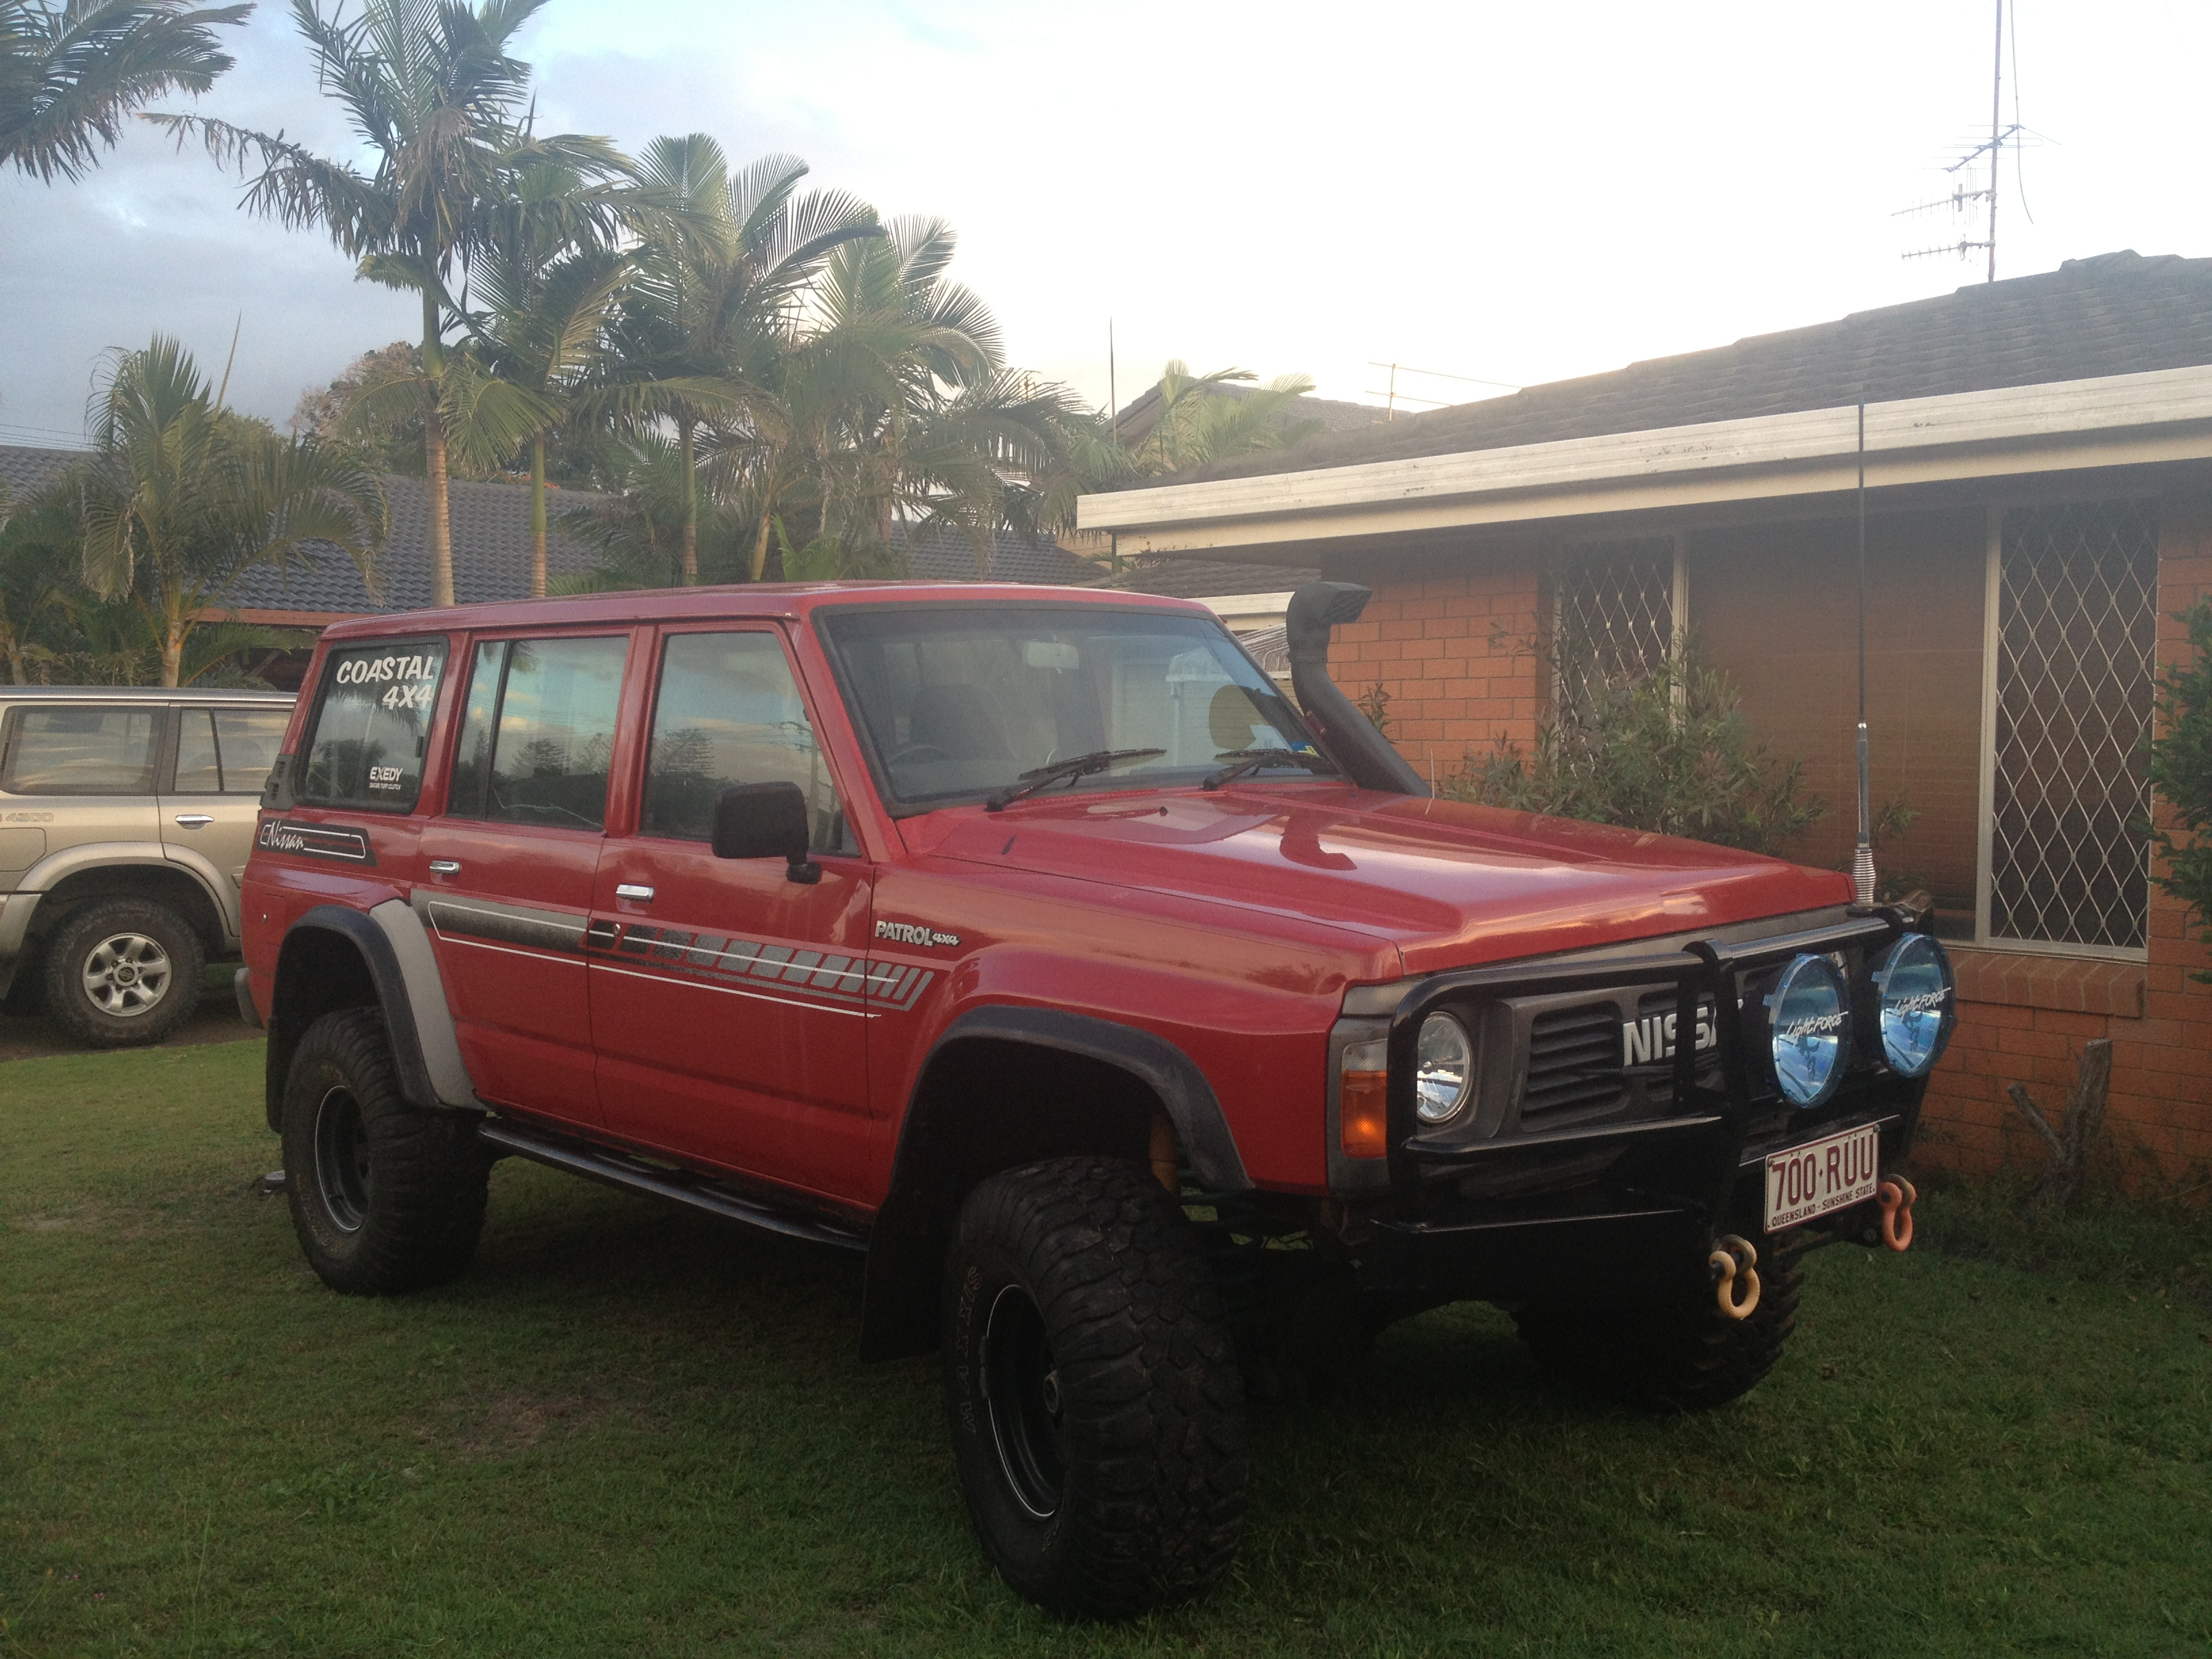 1989 nissan patrol 4x4 for sale qld gold coast. Black Bedroom Furniture Sets. Home Design Ideas